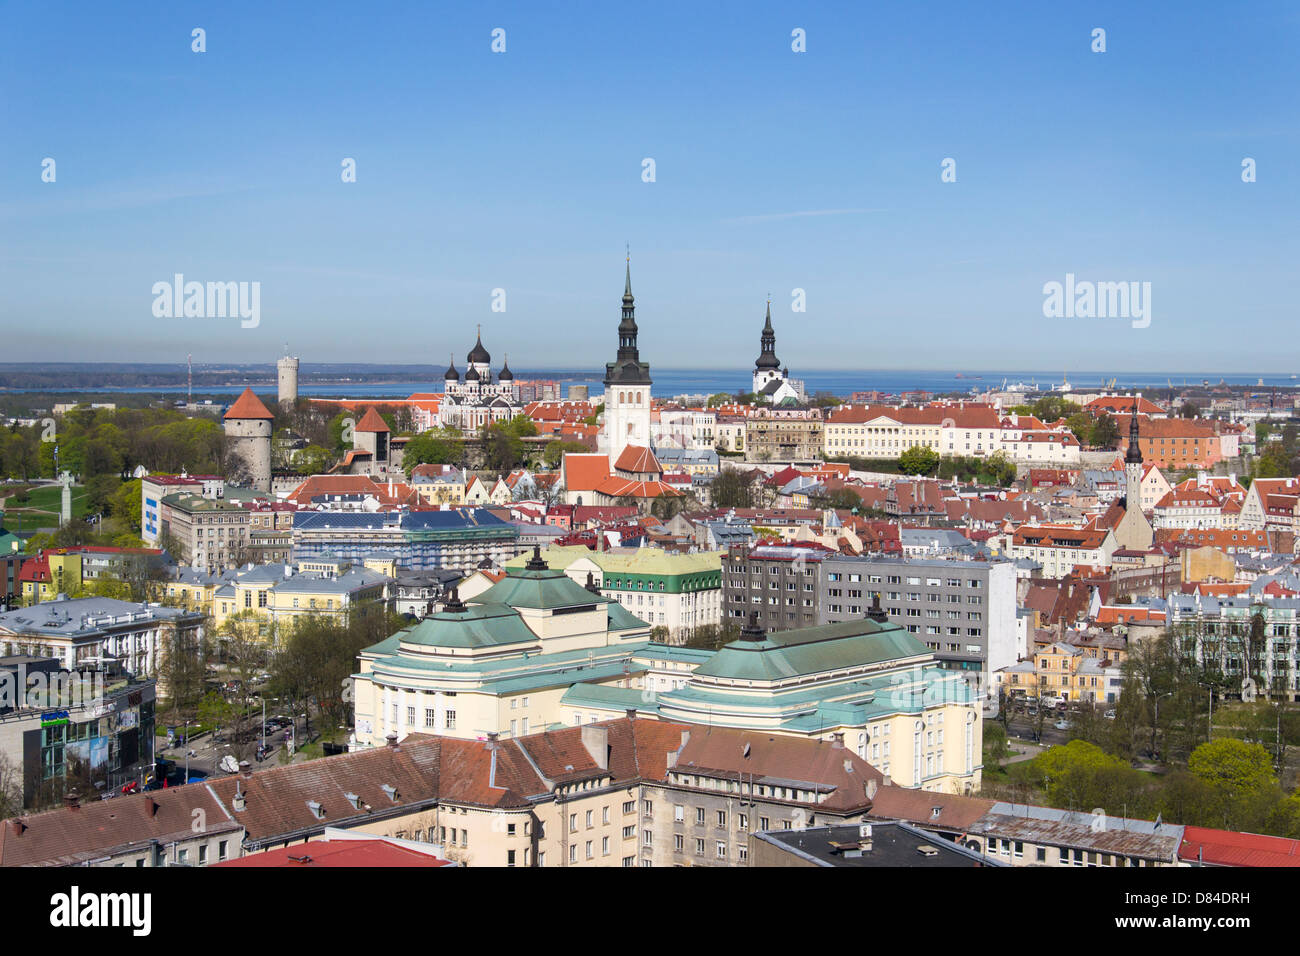 View on Tallinn Old town from top of Radisson Blu Hotel. - Stock Image